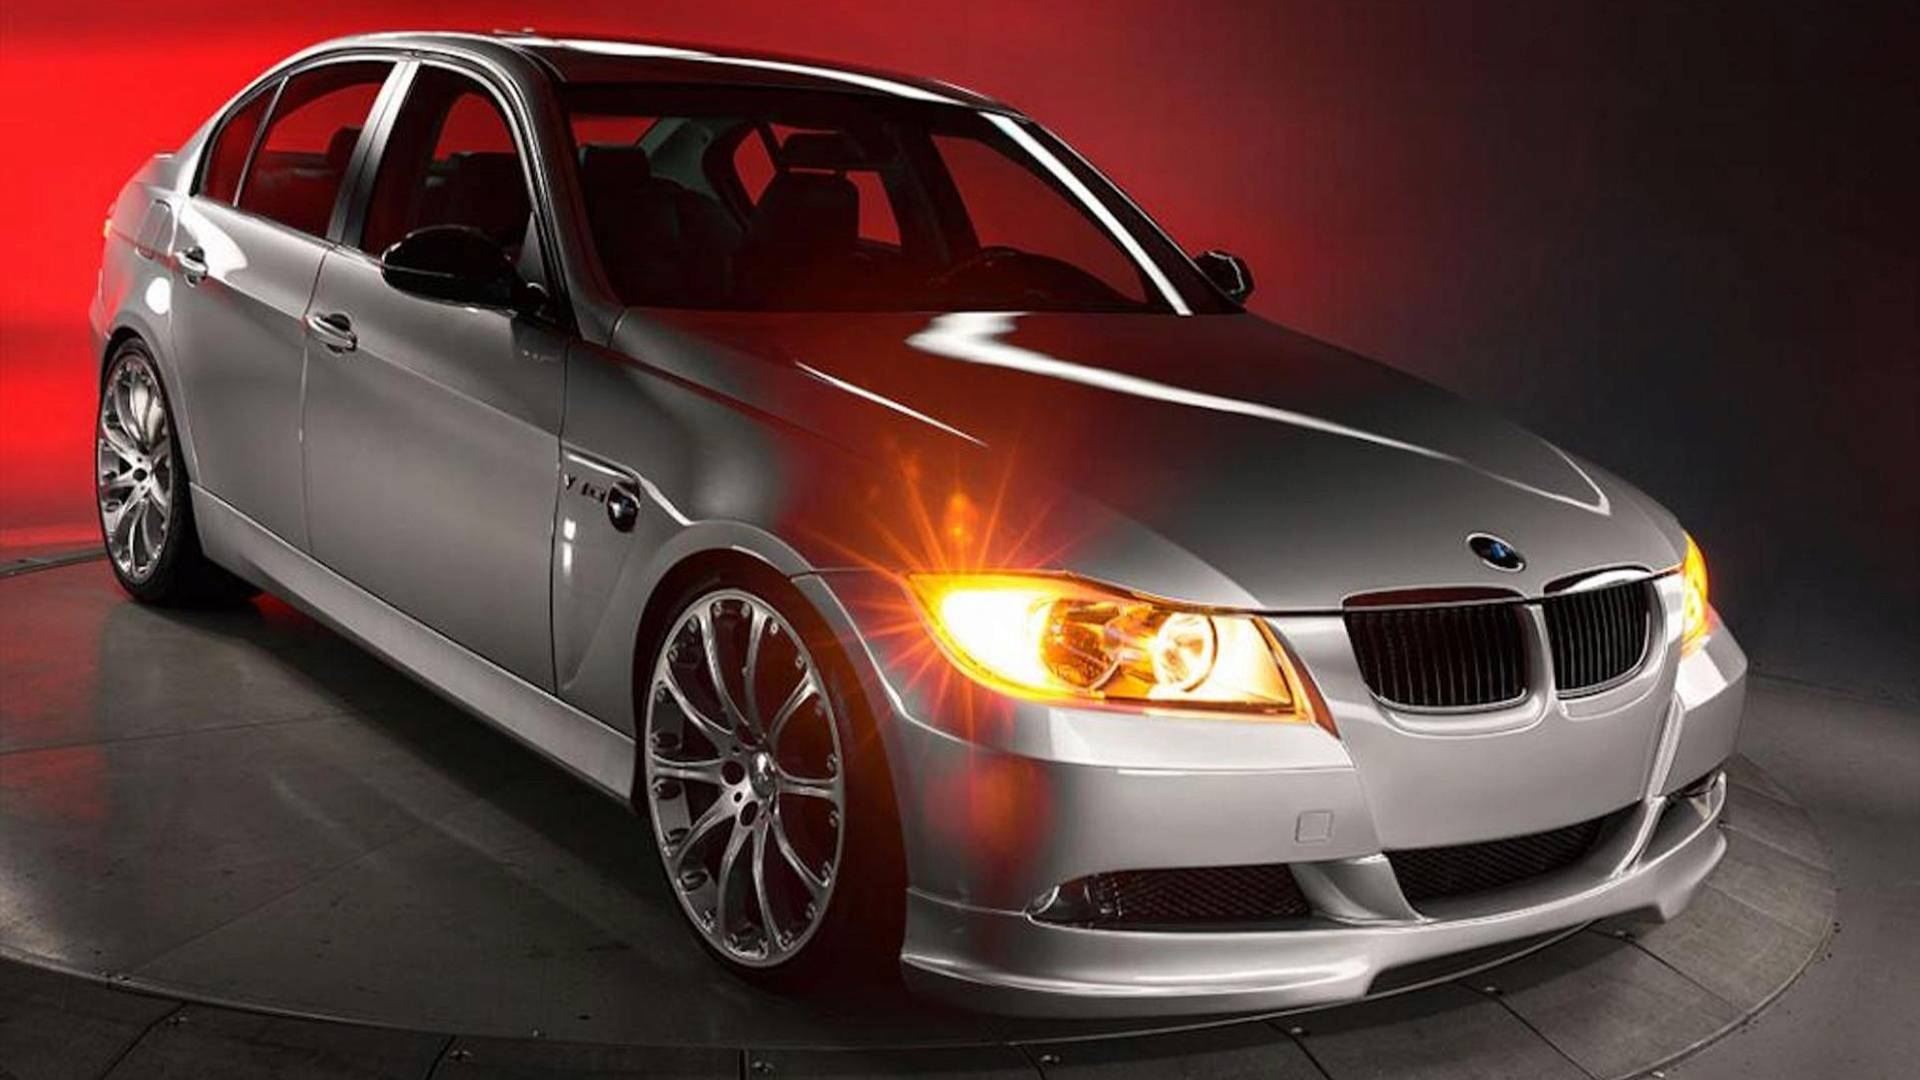 This Rare 550 Hp Bmw Hartge H50 V10 Could Be Yours For 60k